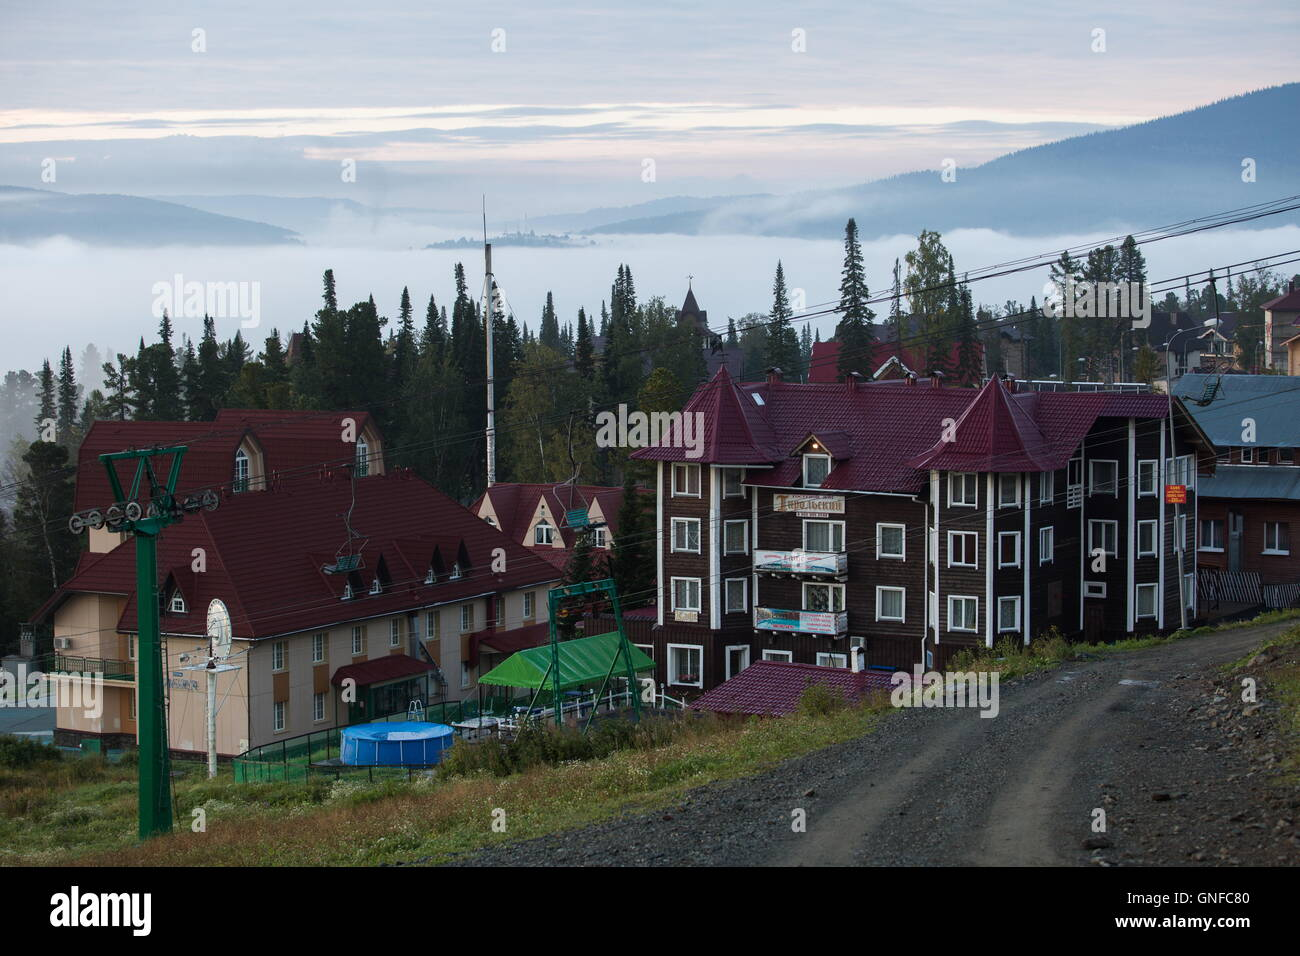 Kemerovo Region, Russia. 28th Aug, 2016. A view of the village of Sheregesh in Tashtagolsky District. © Dmitry - Stock Image